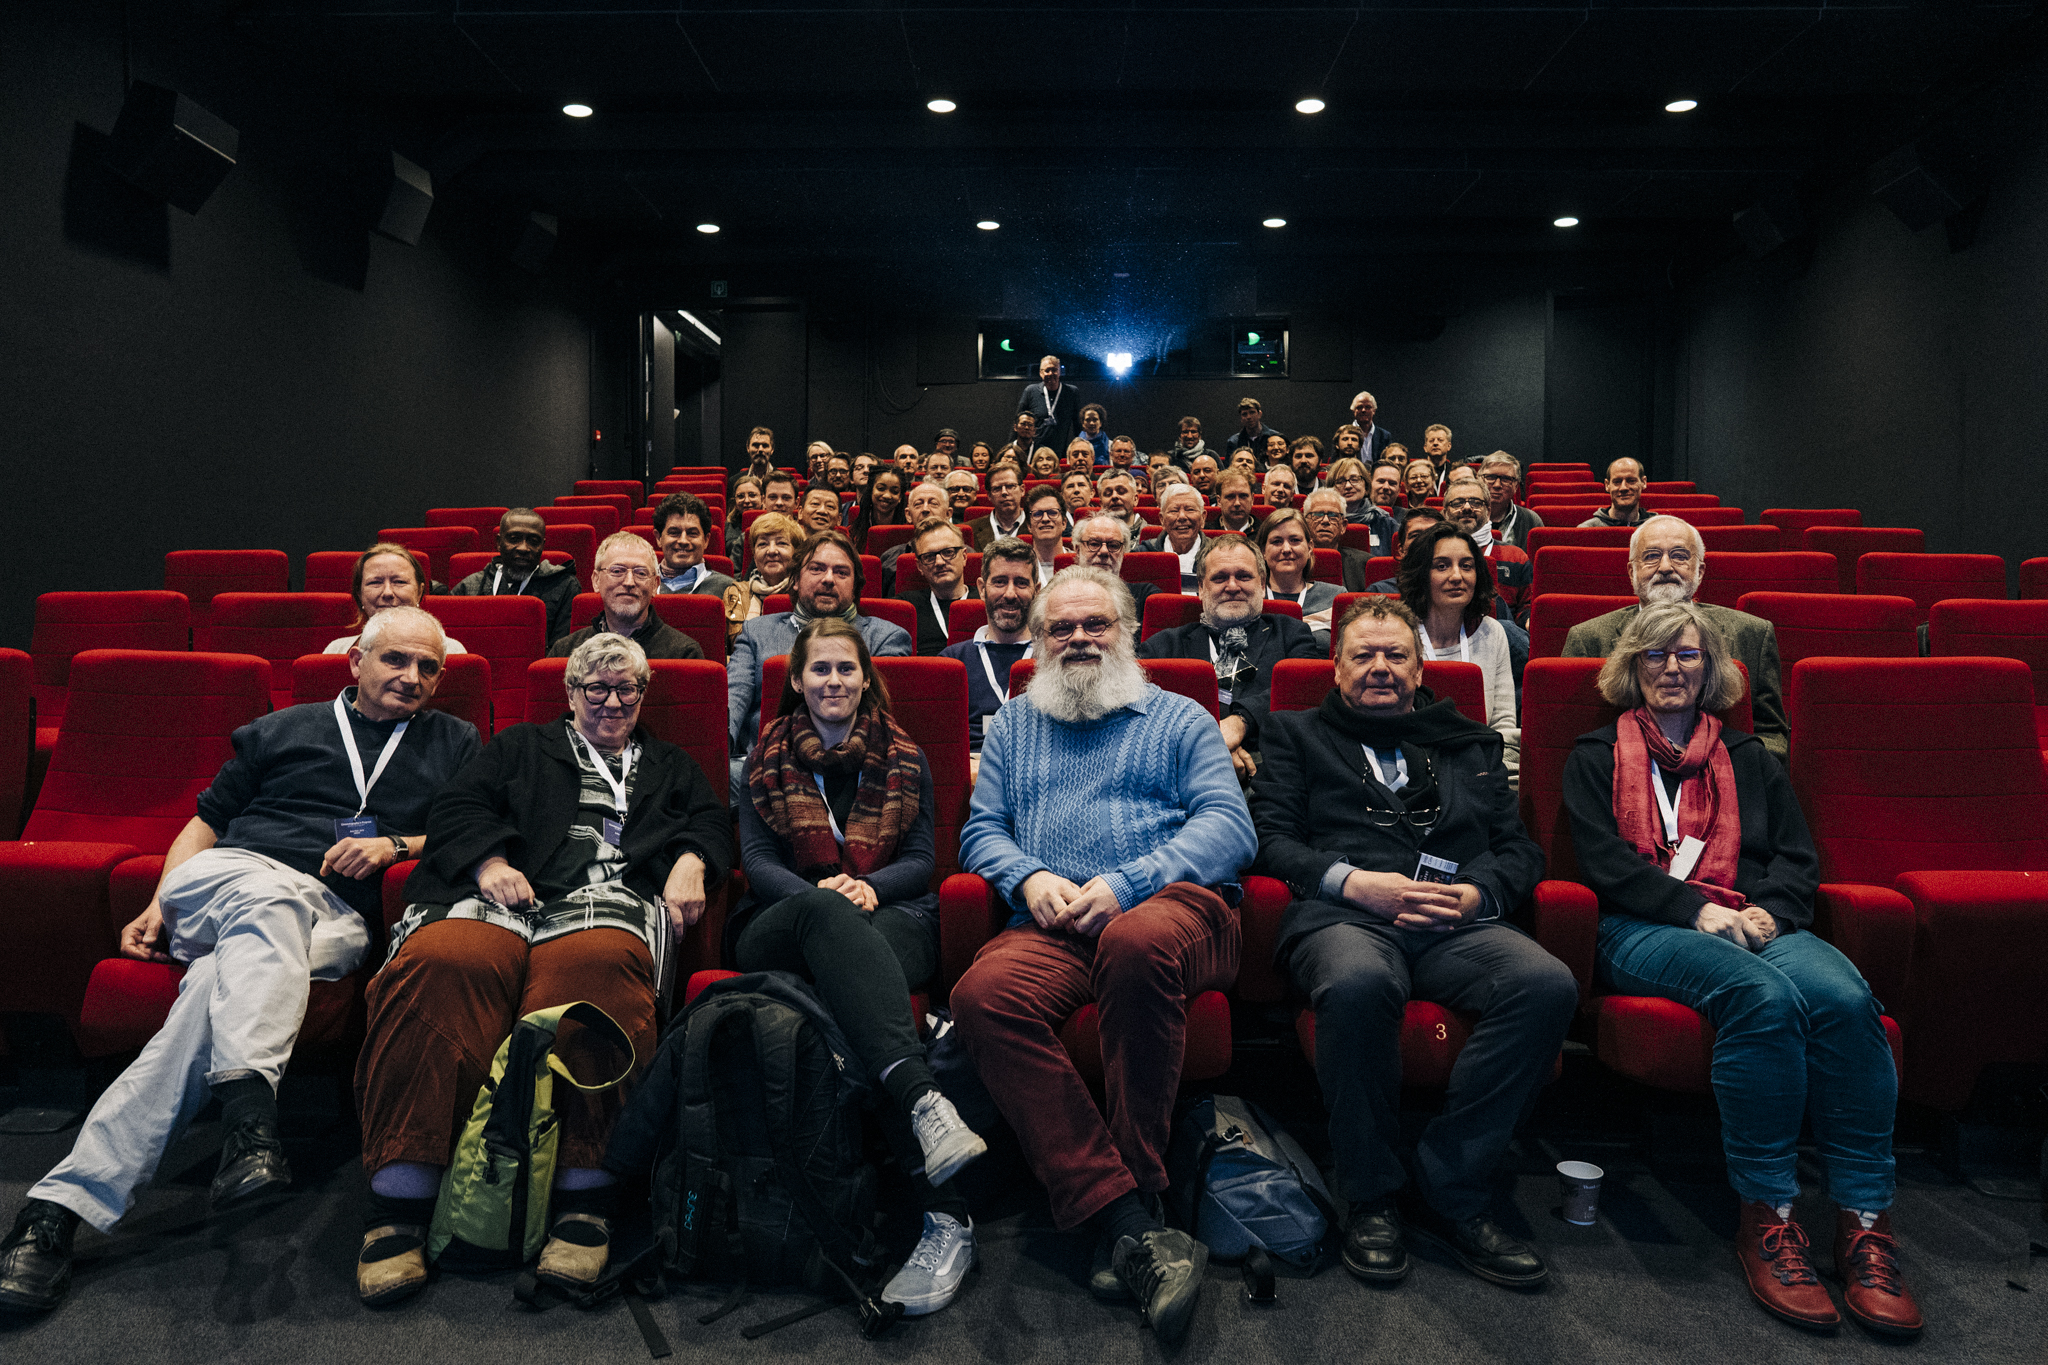 Participants of the Cinematography in Progress 3 conference